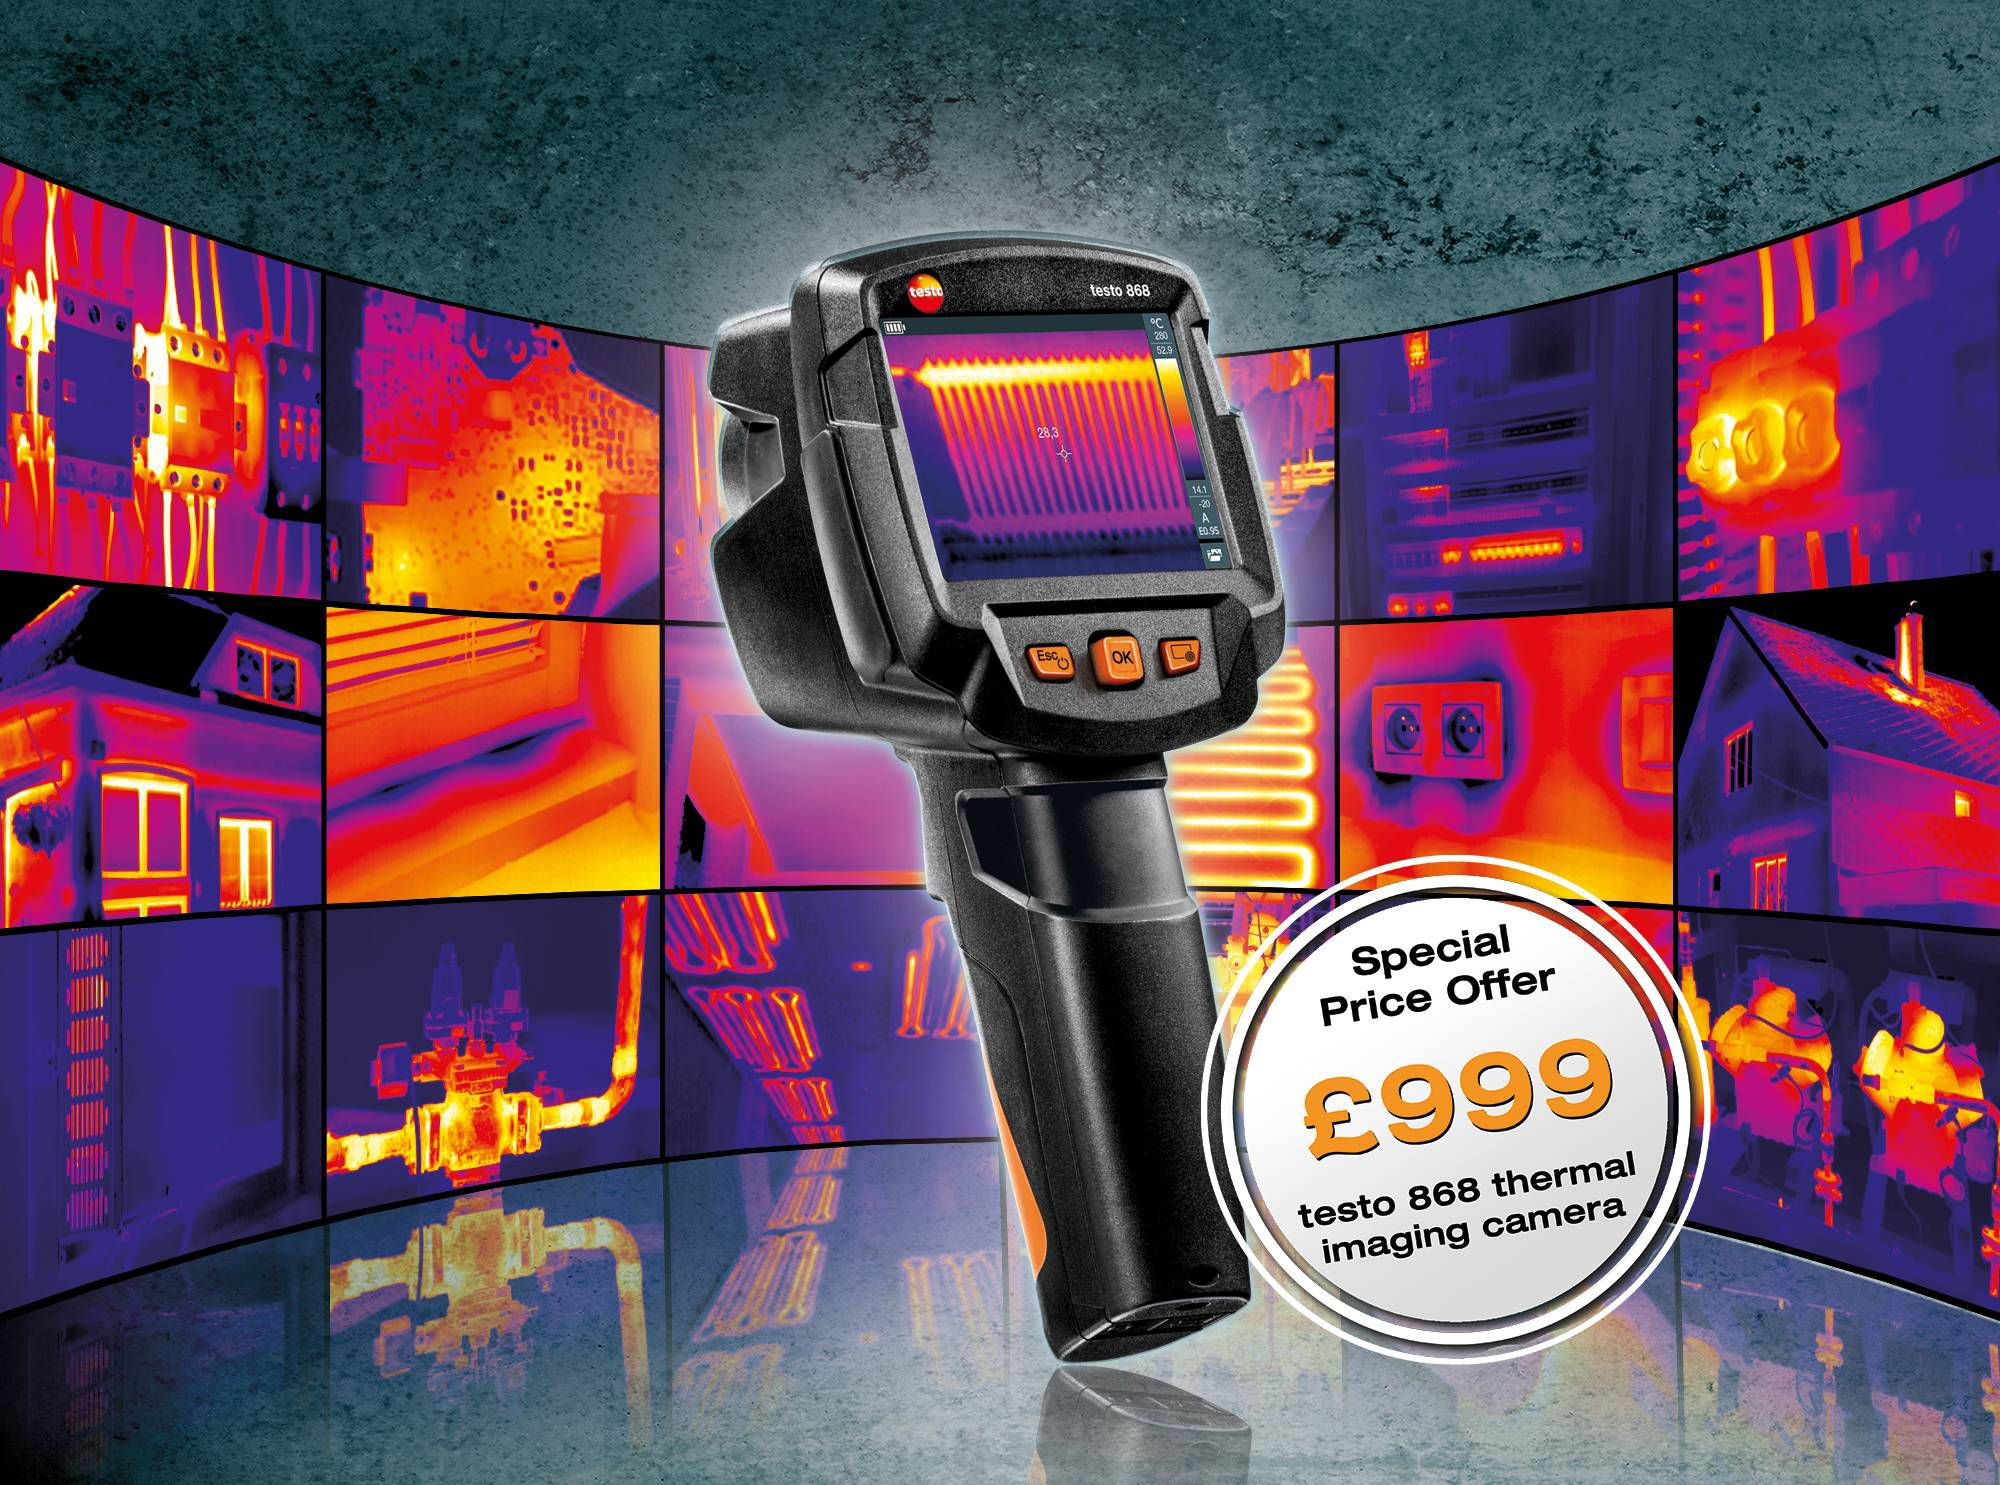 testo-868-promor special offers page.jpg